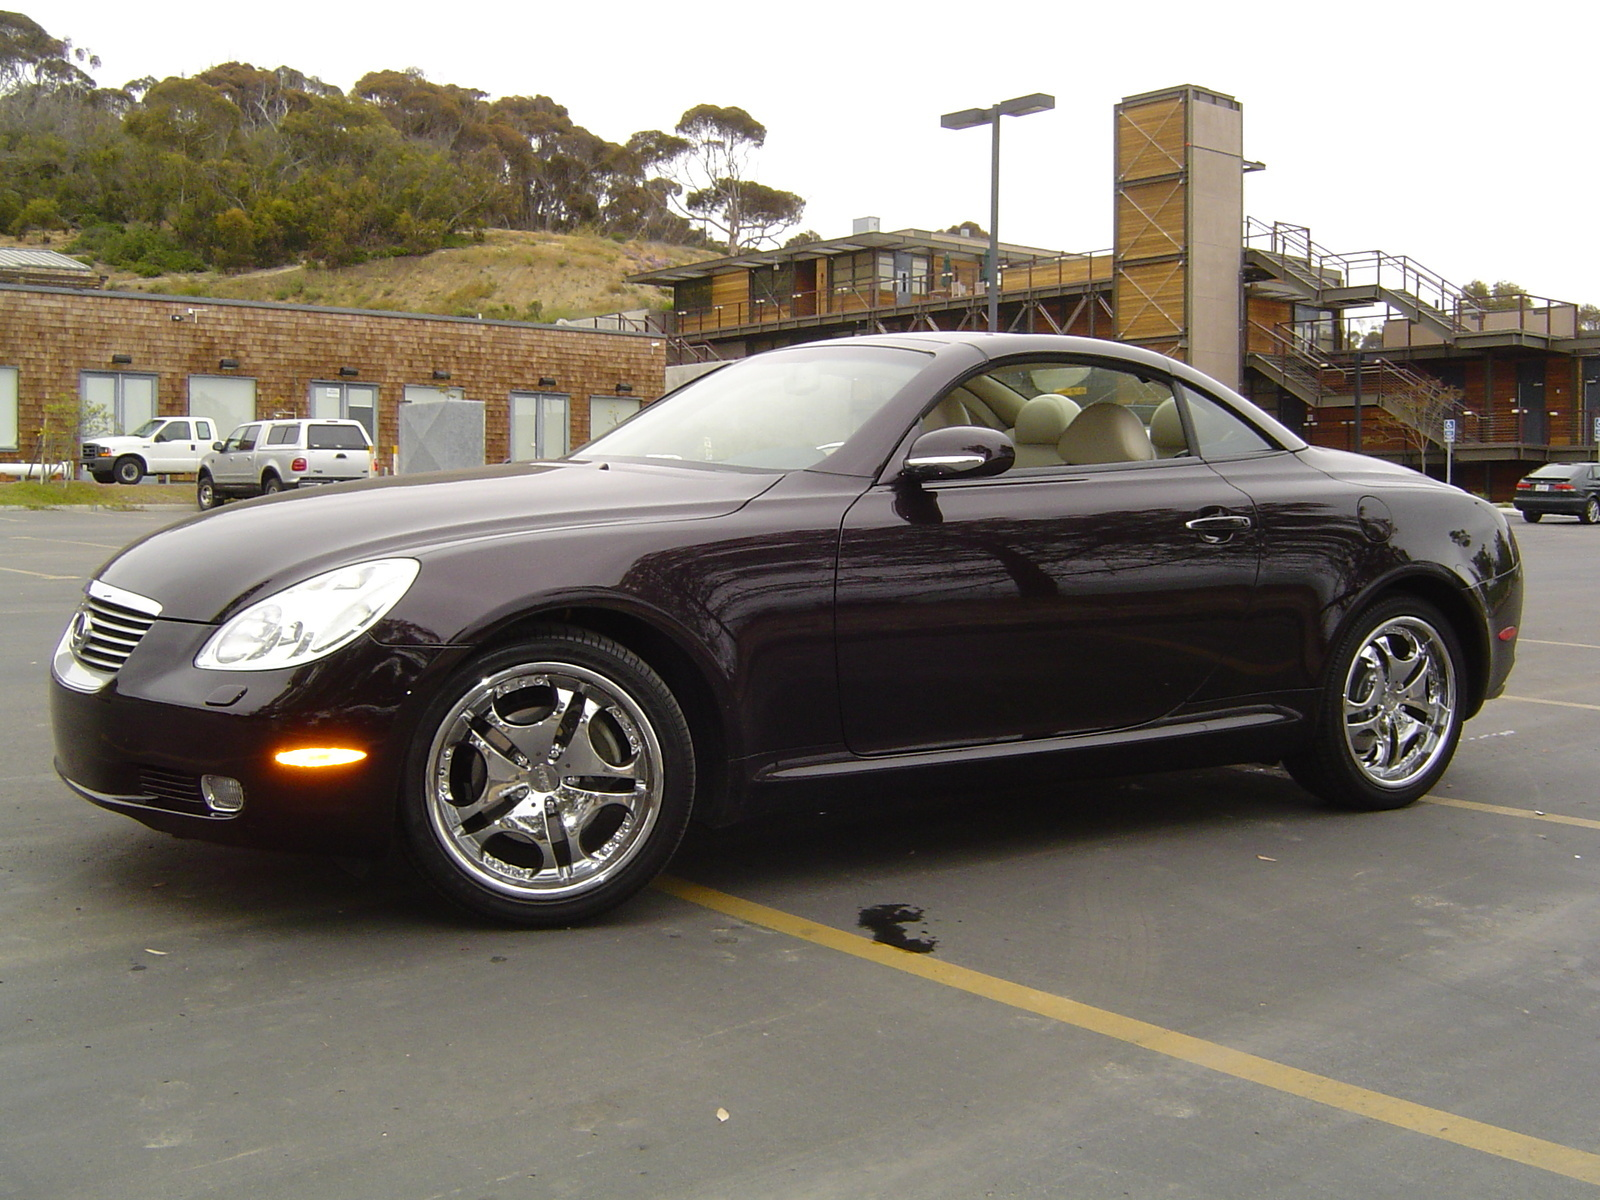 Picture of 2002 lexus sc 430 base exterior gallery_worthy